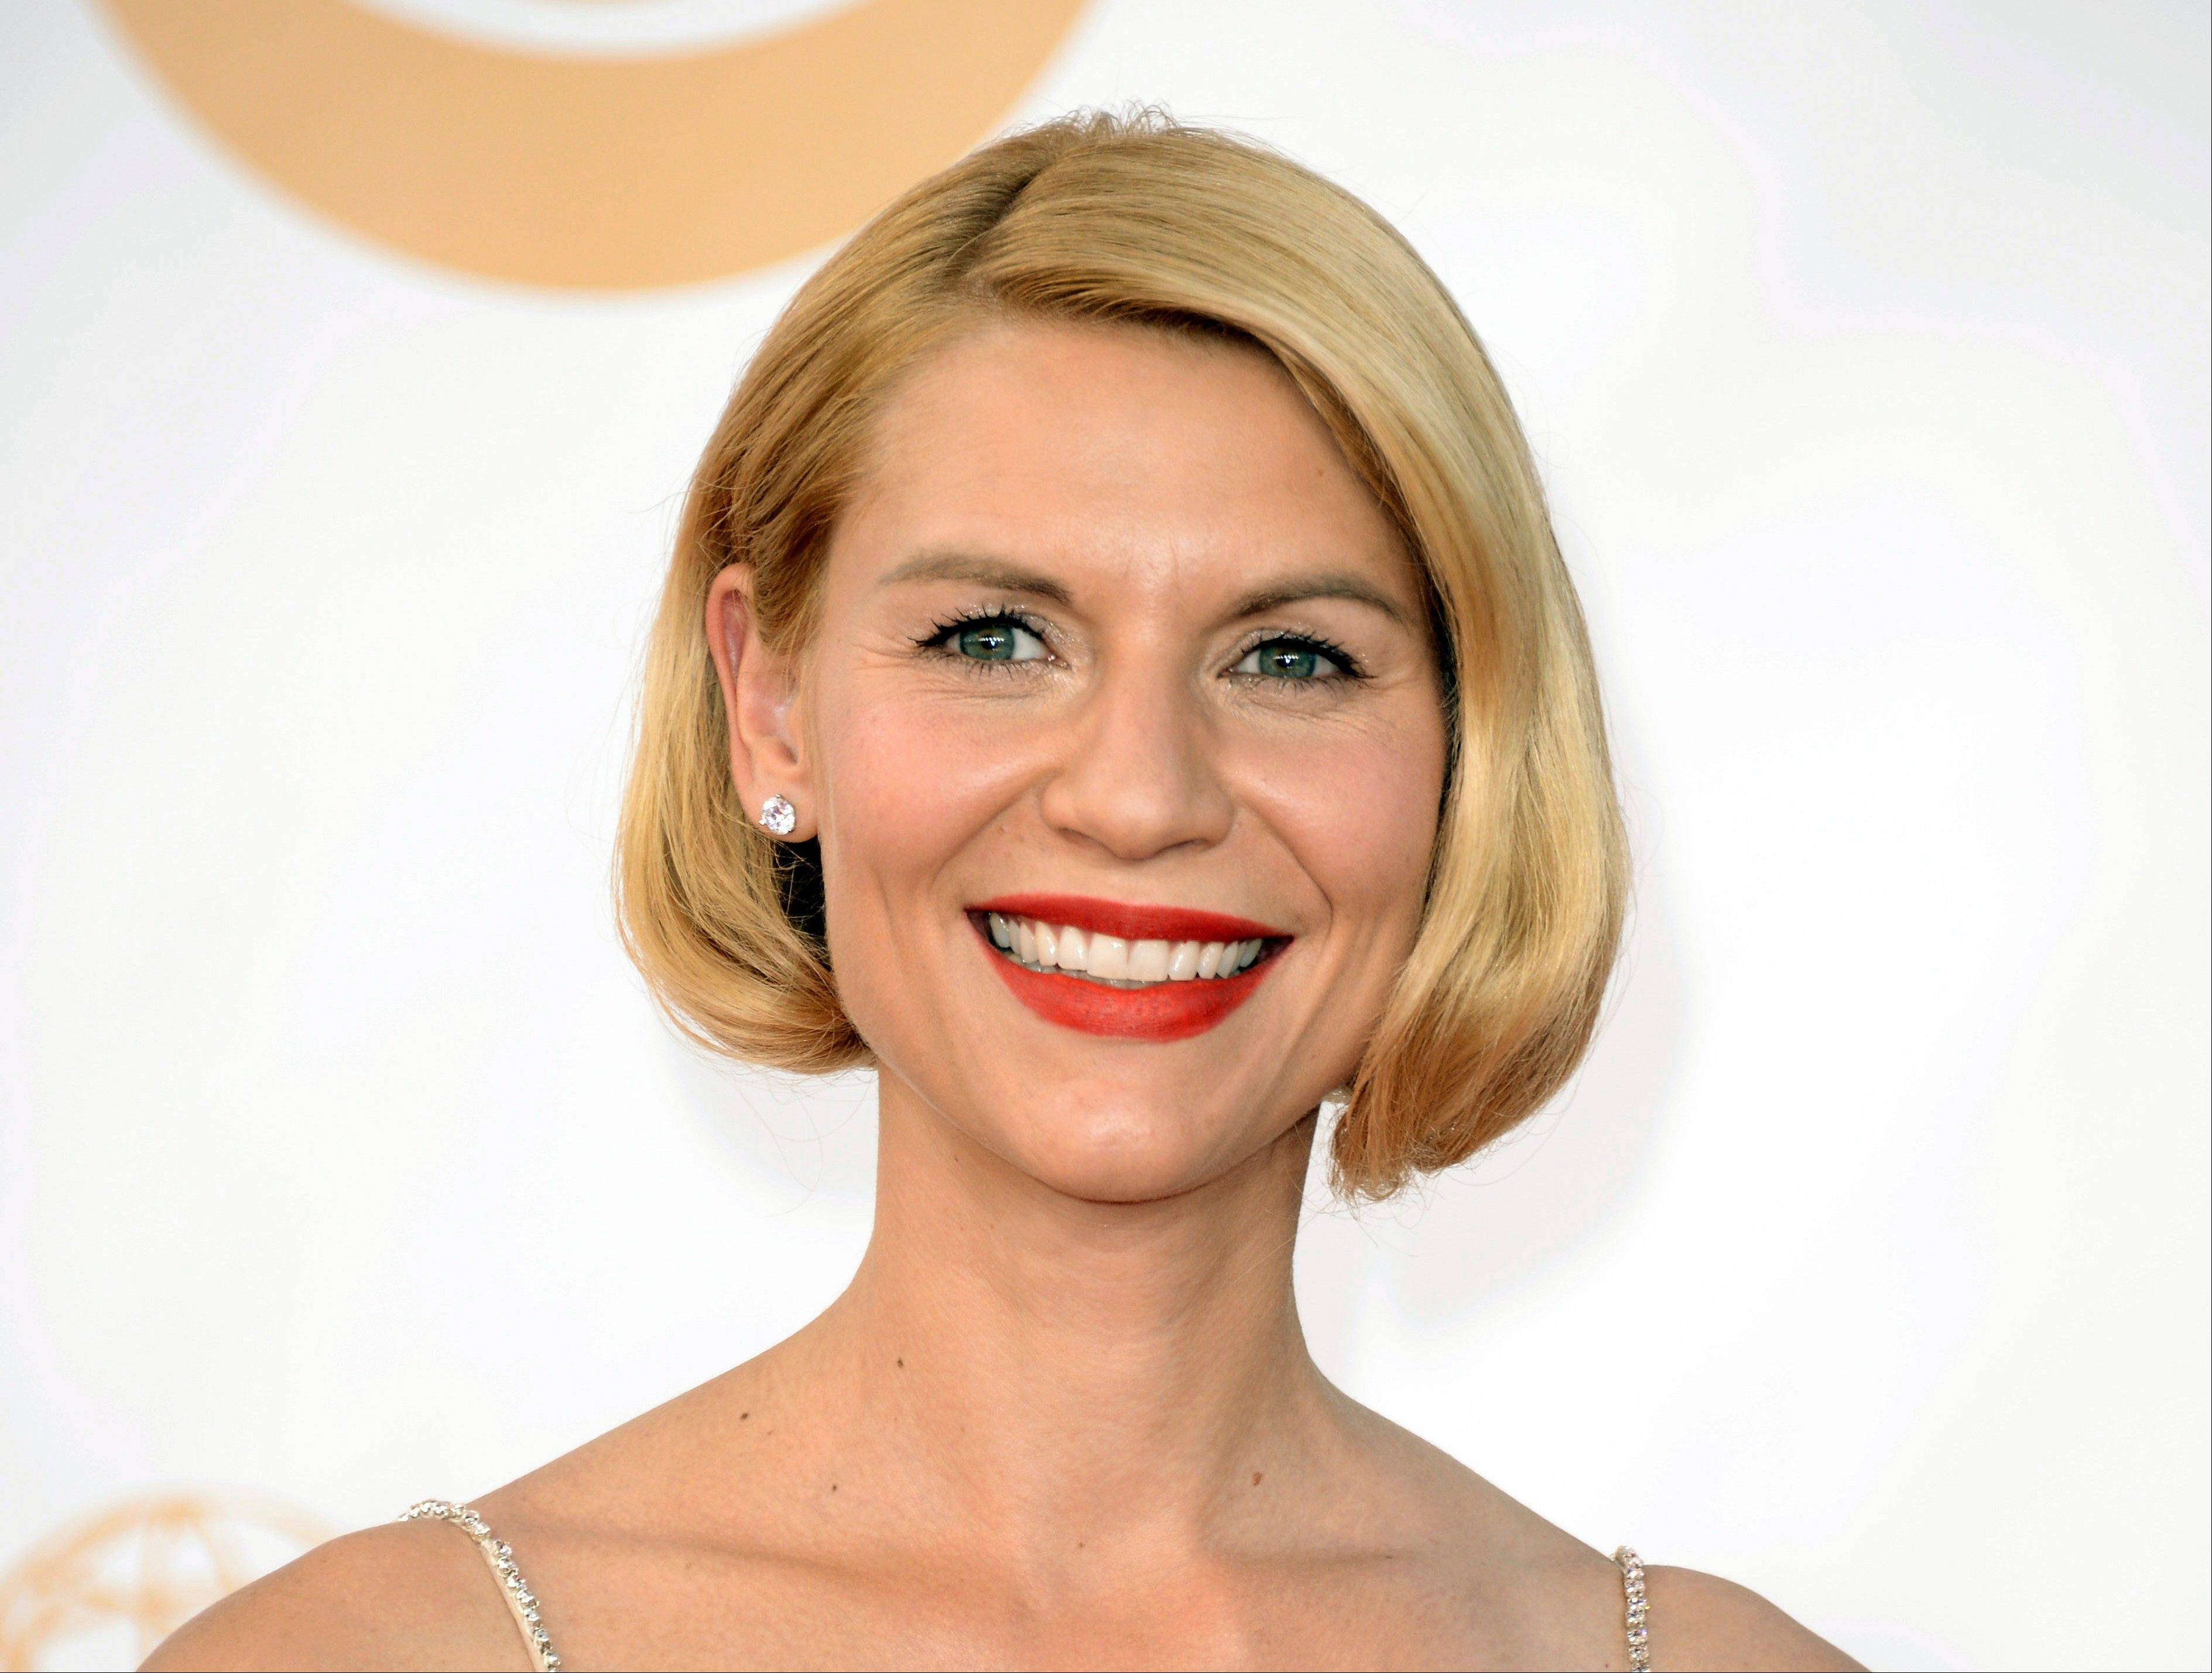 Claire Danes has been tapped to host the 20th anniversary Nobel Peace Prize concert in December.